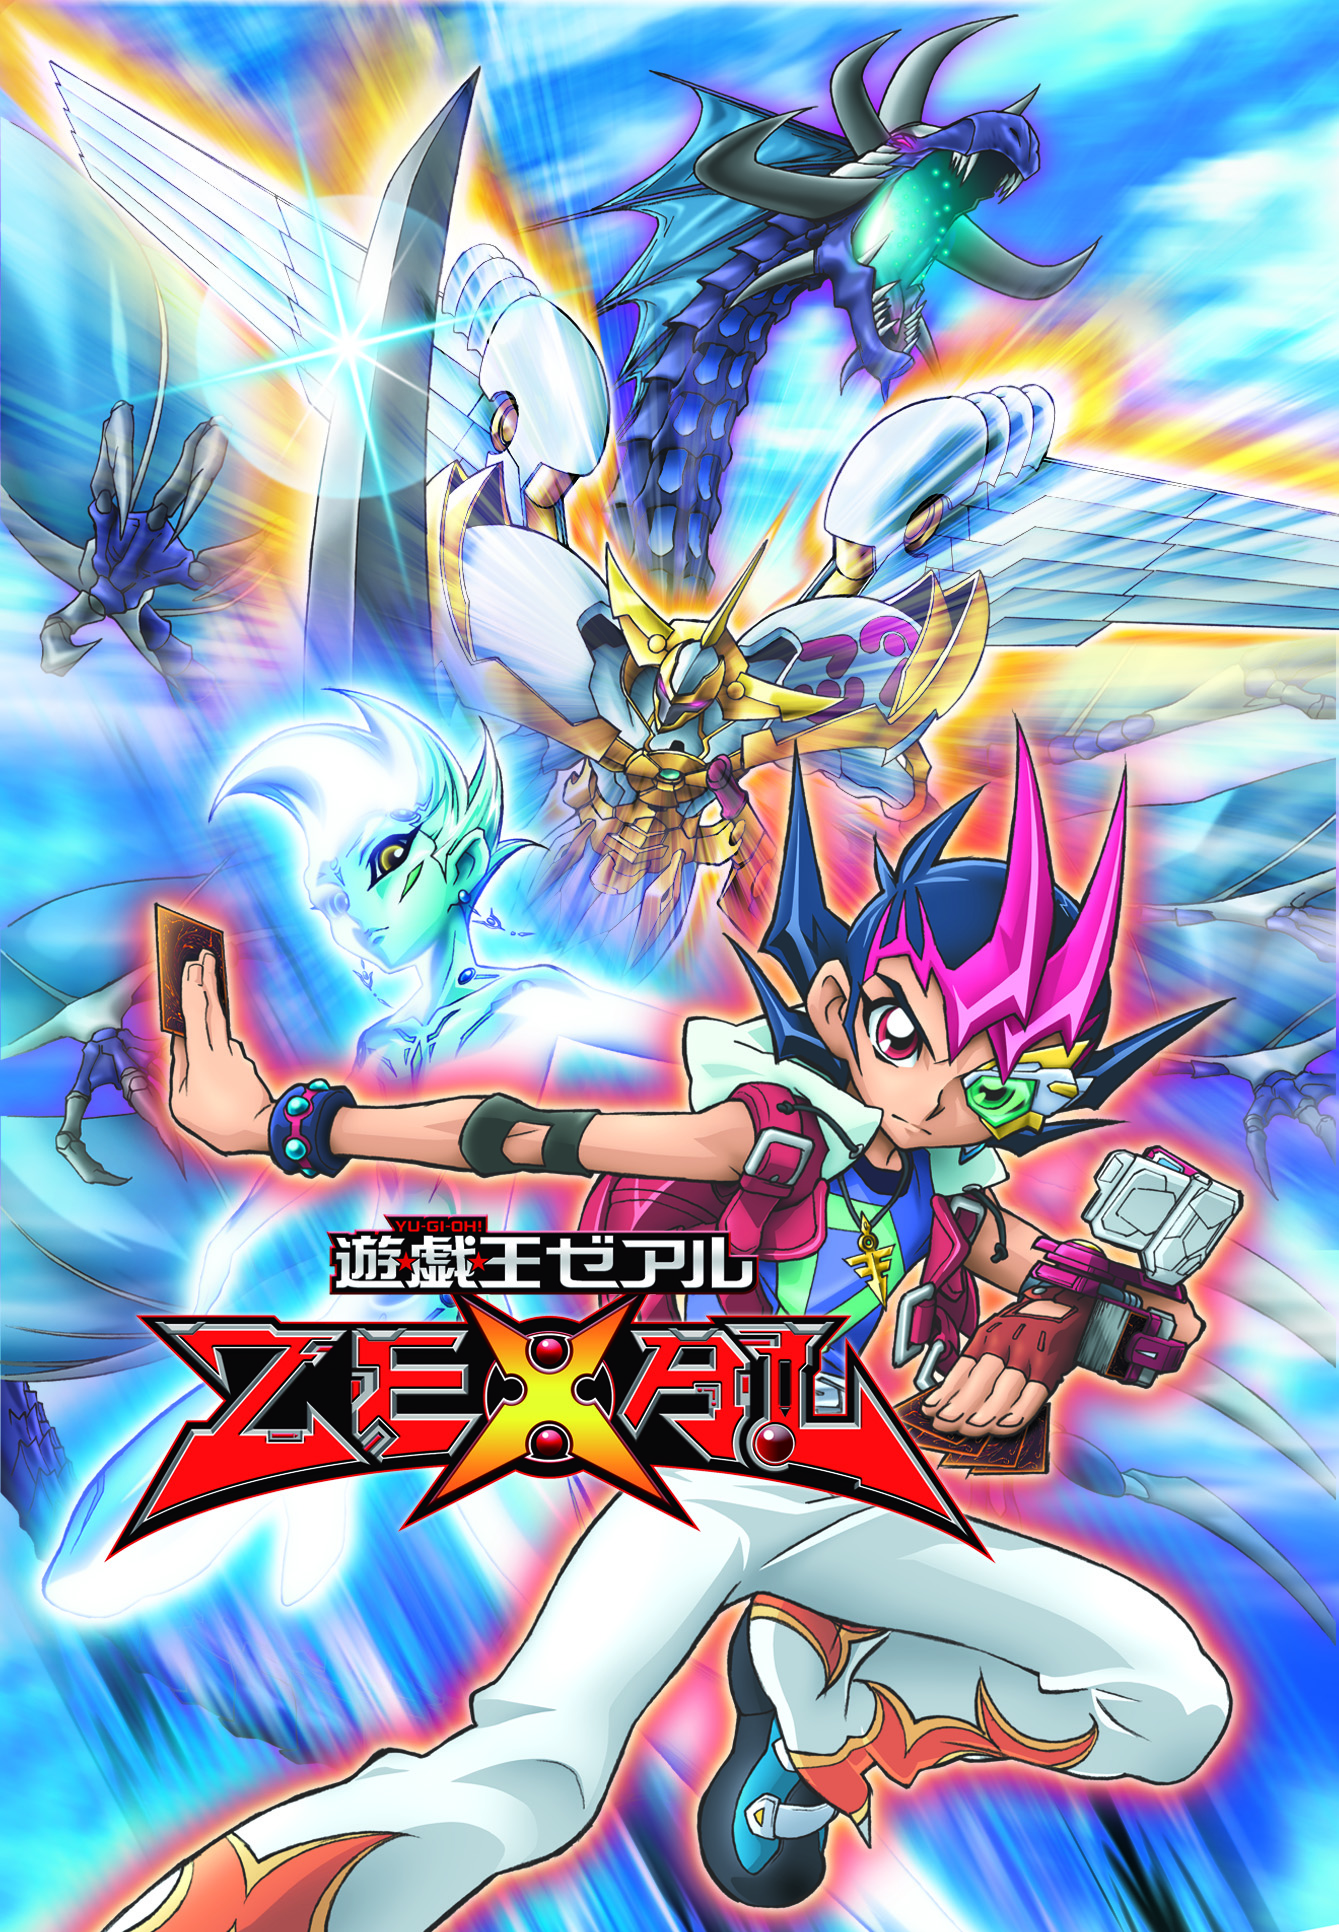 http://img1.wikia.nocookie.net/__cb20130509003430/wikiseriesjaponesas/es/images/a/a1/Yu-Gi-Oh!_ZEXAL_01.jpg